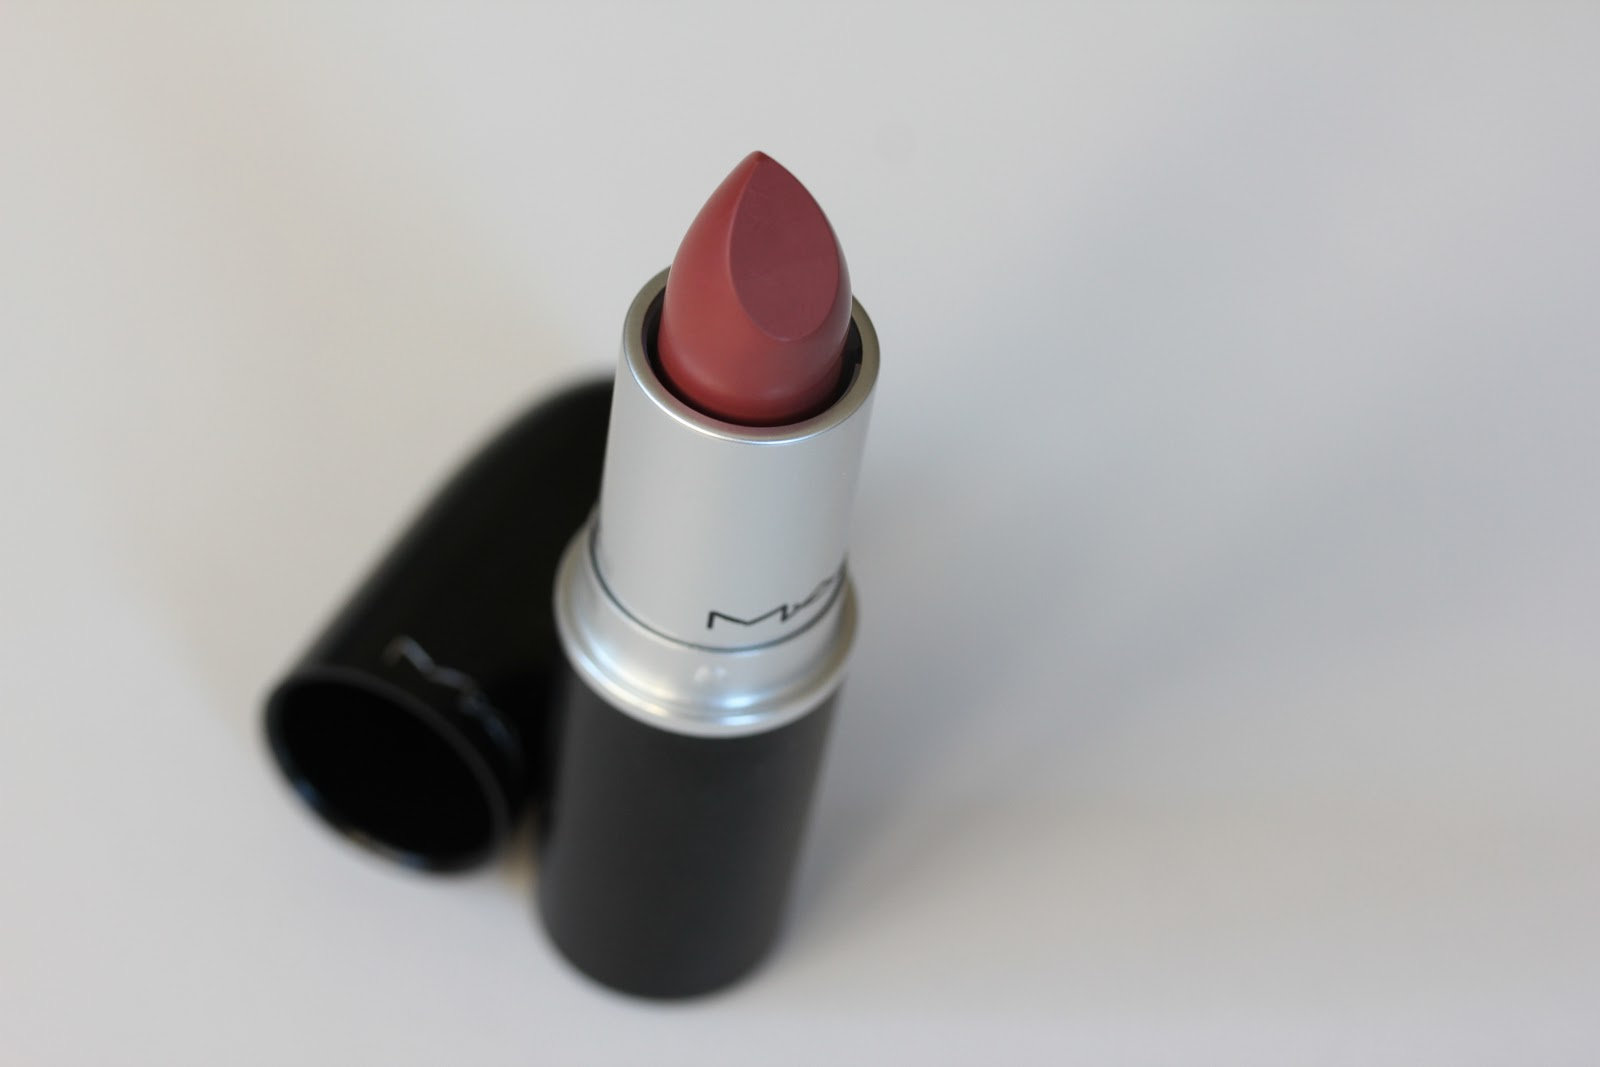 mac twig lipstick - photo #4